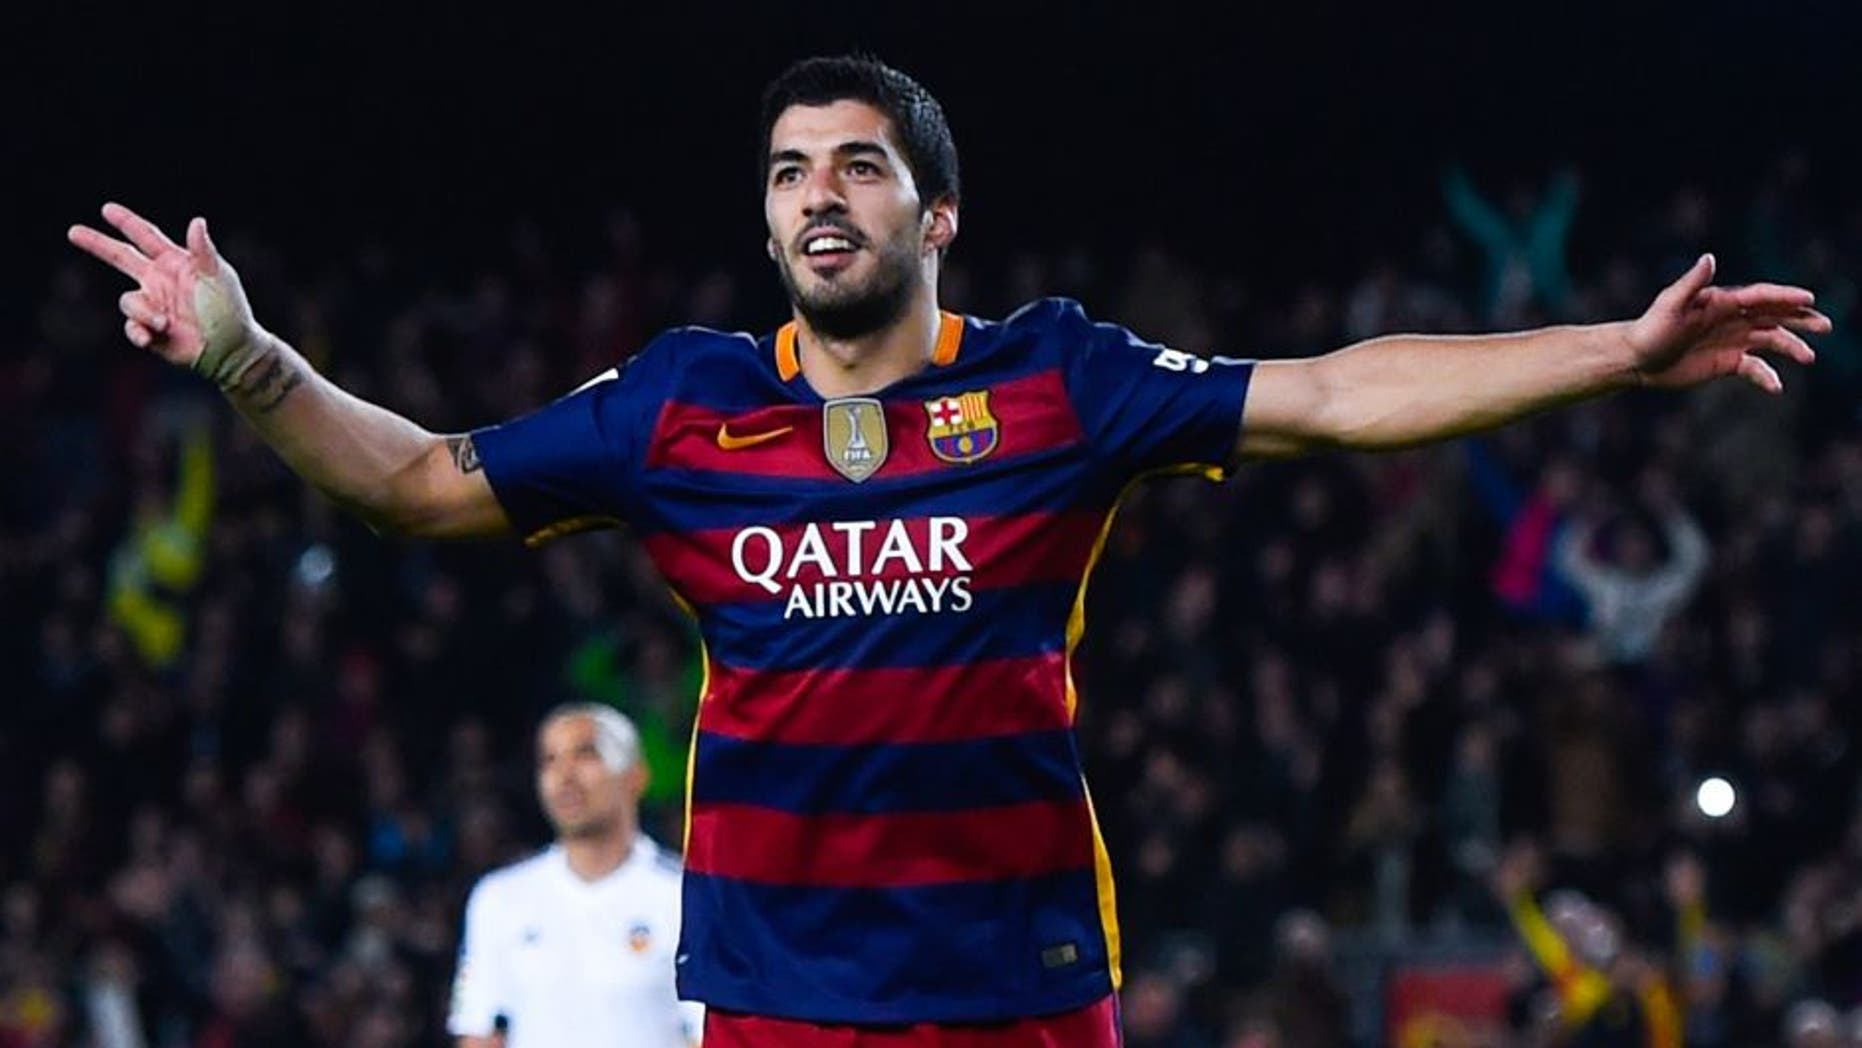 BARCELONA, SPAIN - FEBRUARY 03: Luis Suarez of FC Barcelona celebrates after scoring his team's seventh goal during the Copa del Rey Semi Final first leg match between FC Barcelona and Valencia at Nou Camp on February 3, 2016 in Barcelona, Spain. (Photo by David Ramos/Getty Images)